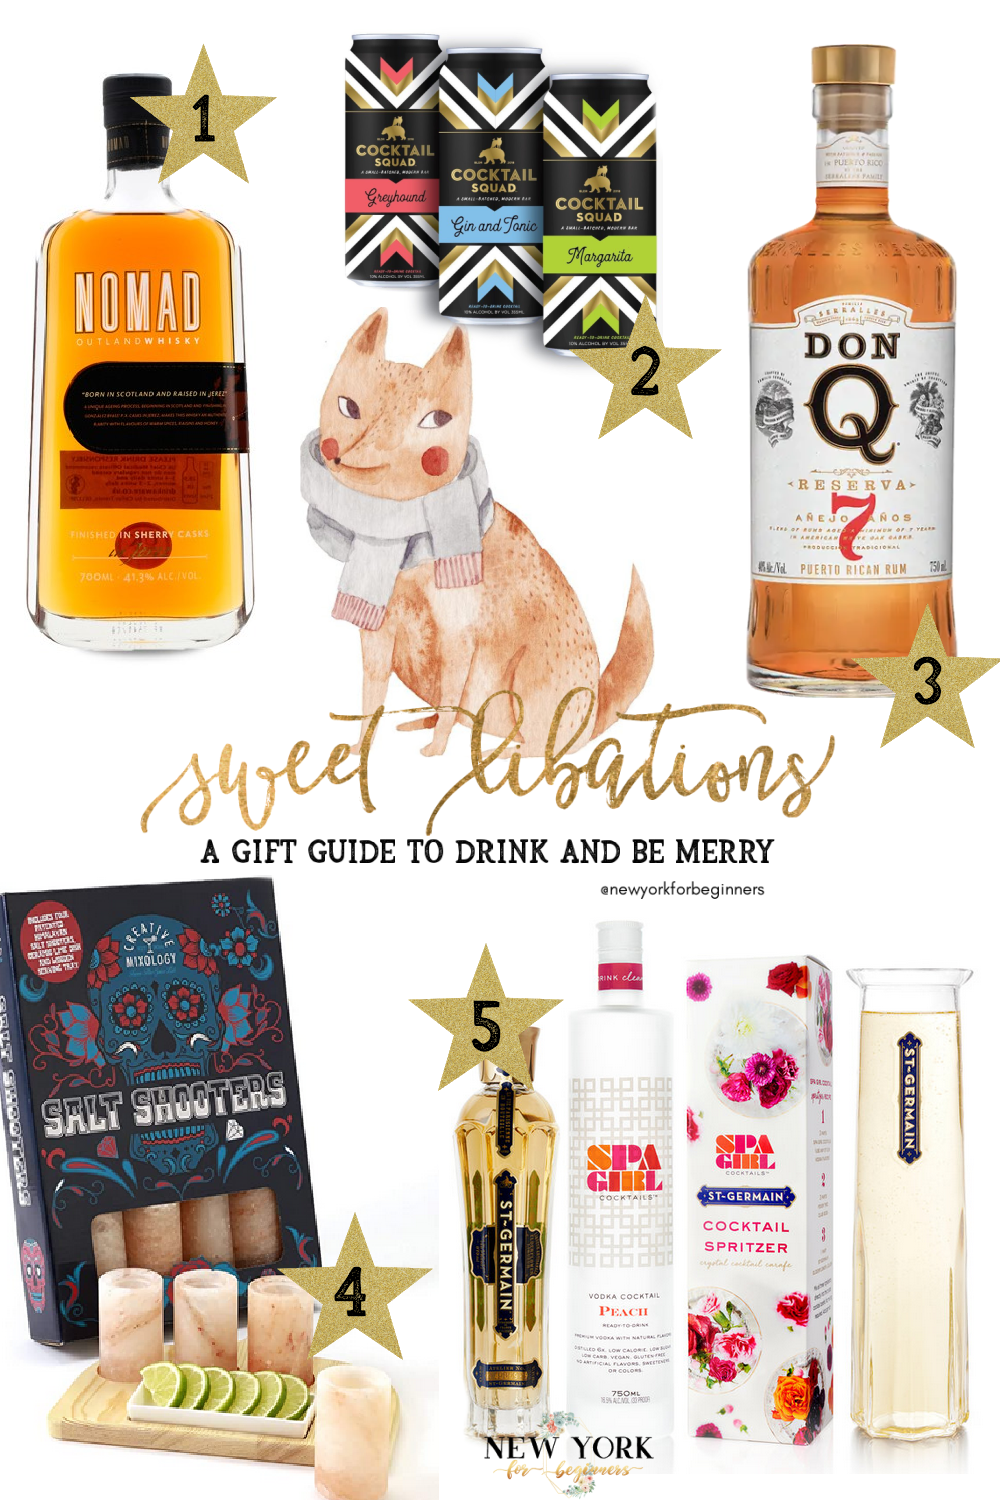 Gift guide to drink and be merry